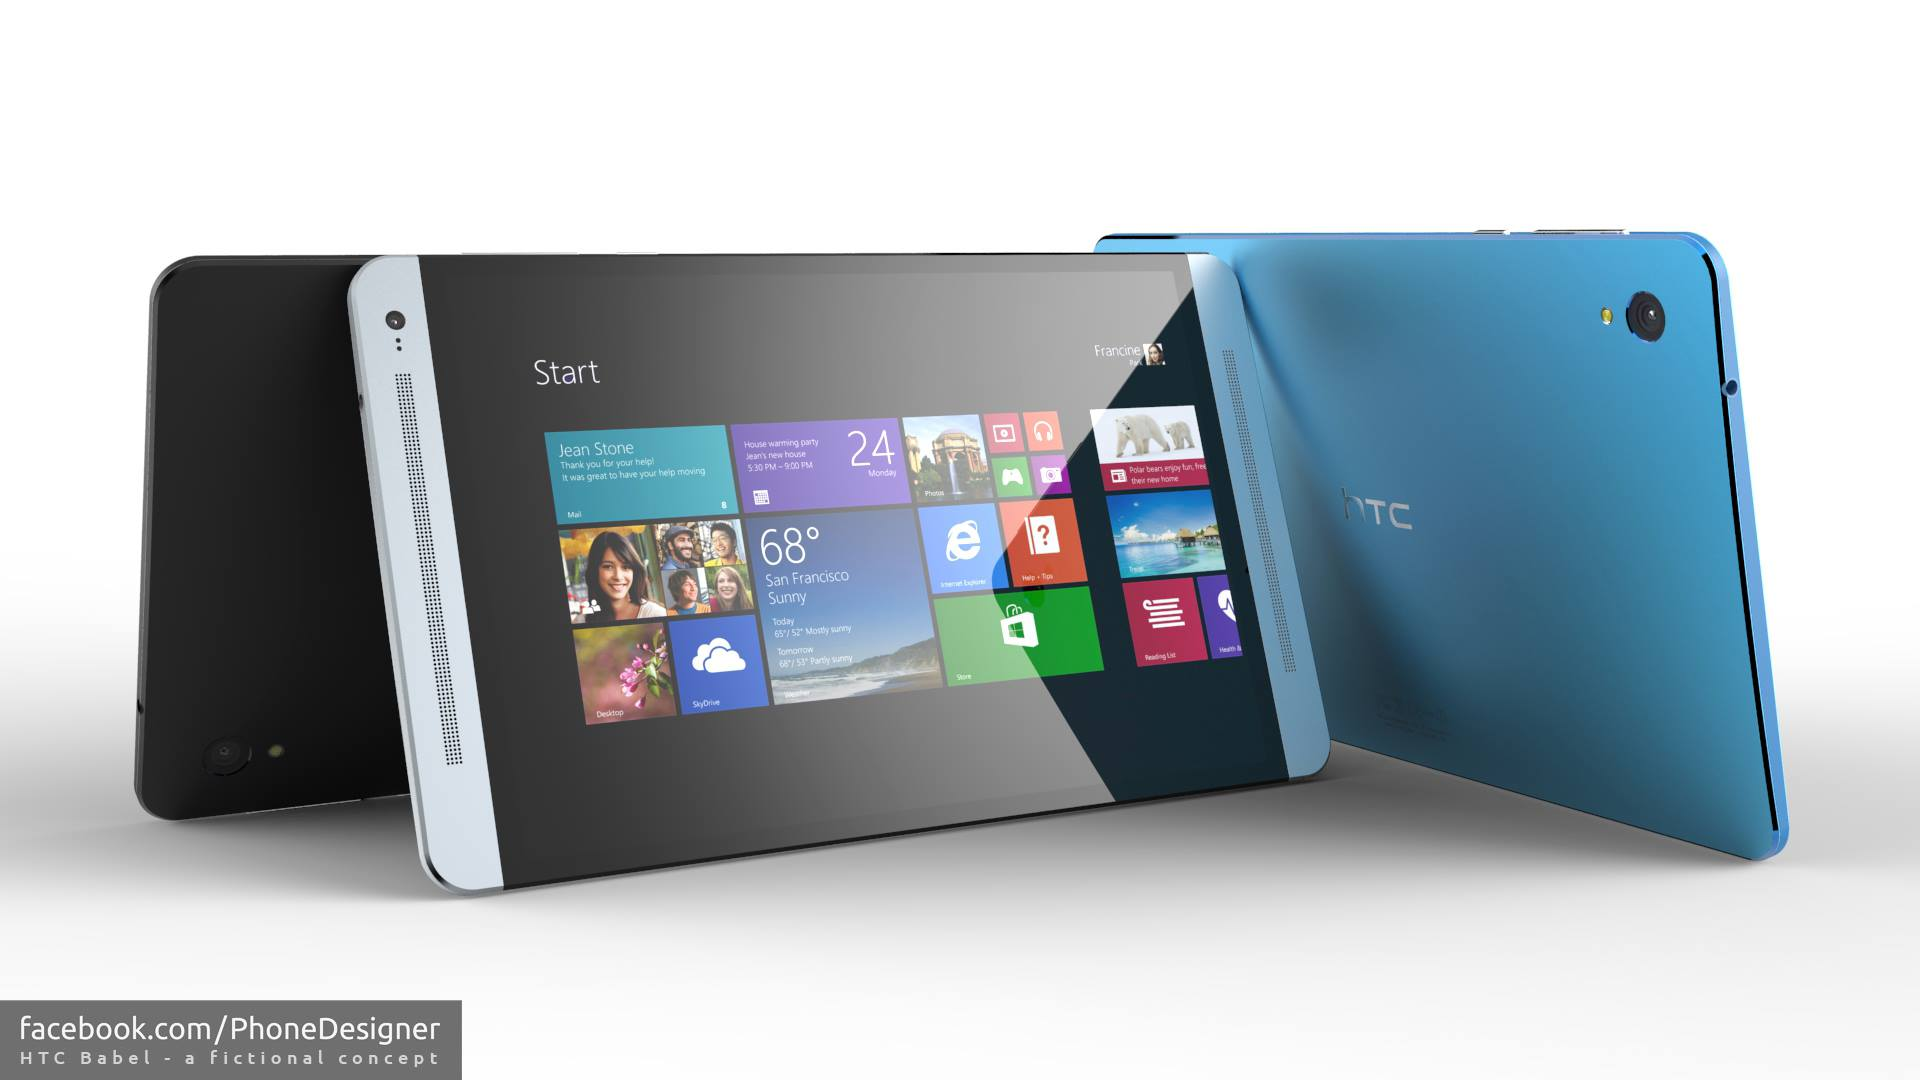 HTC Babel Tablet Runs Both 64-bit Windows 8 and Android ...